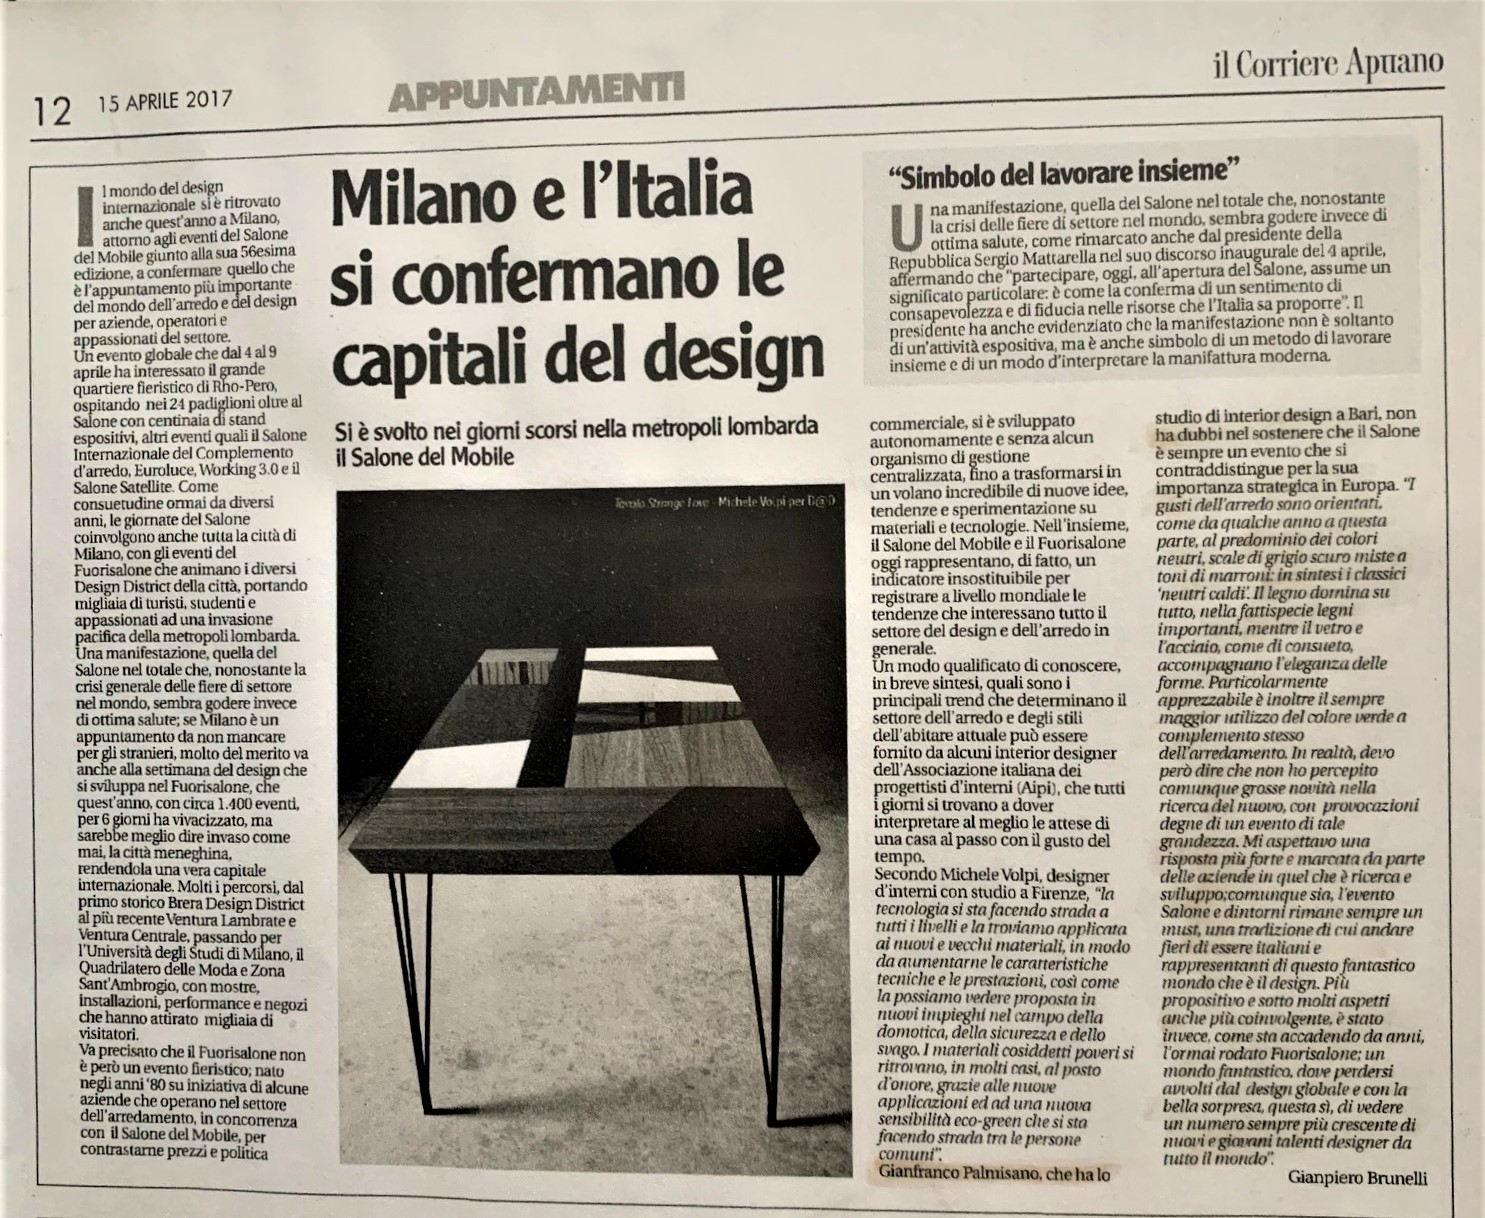 Corriere Apuano